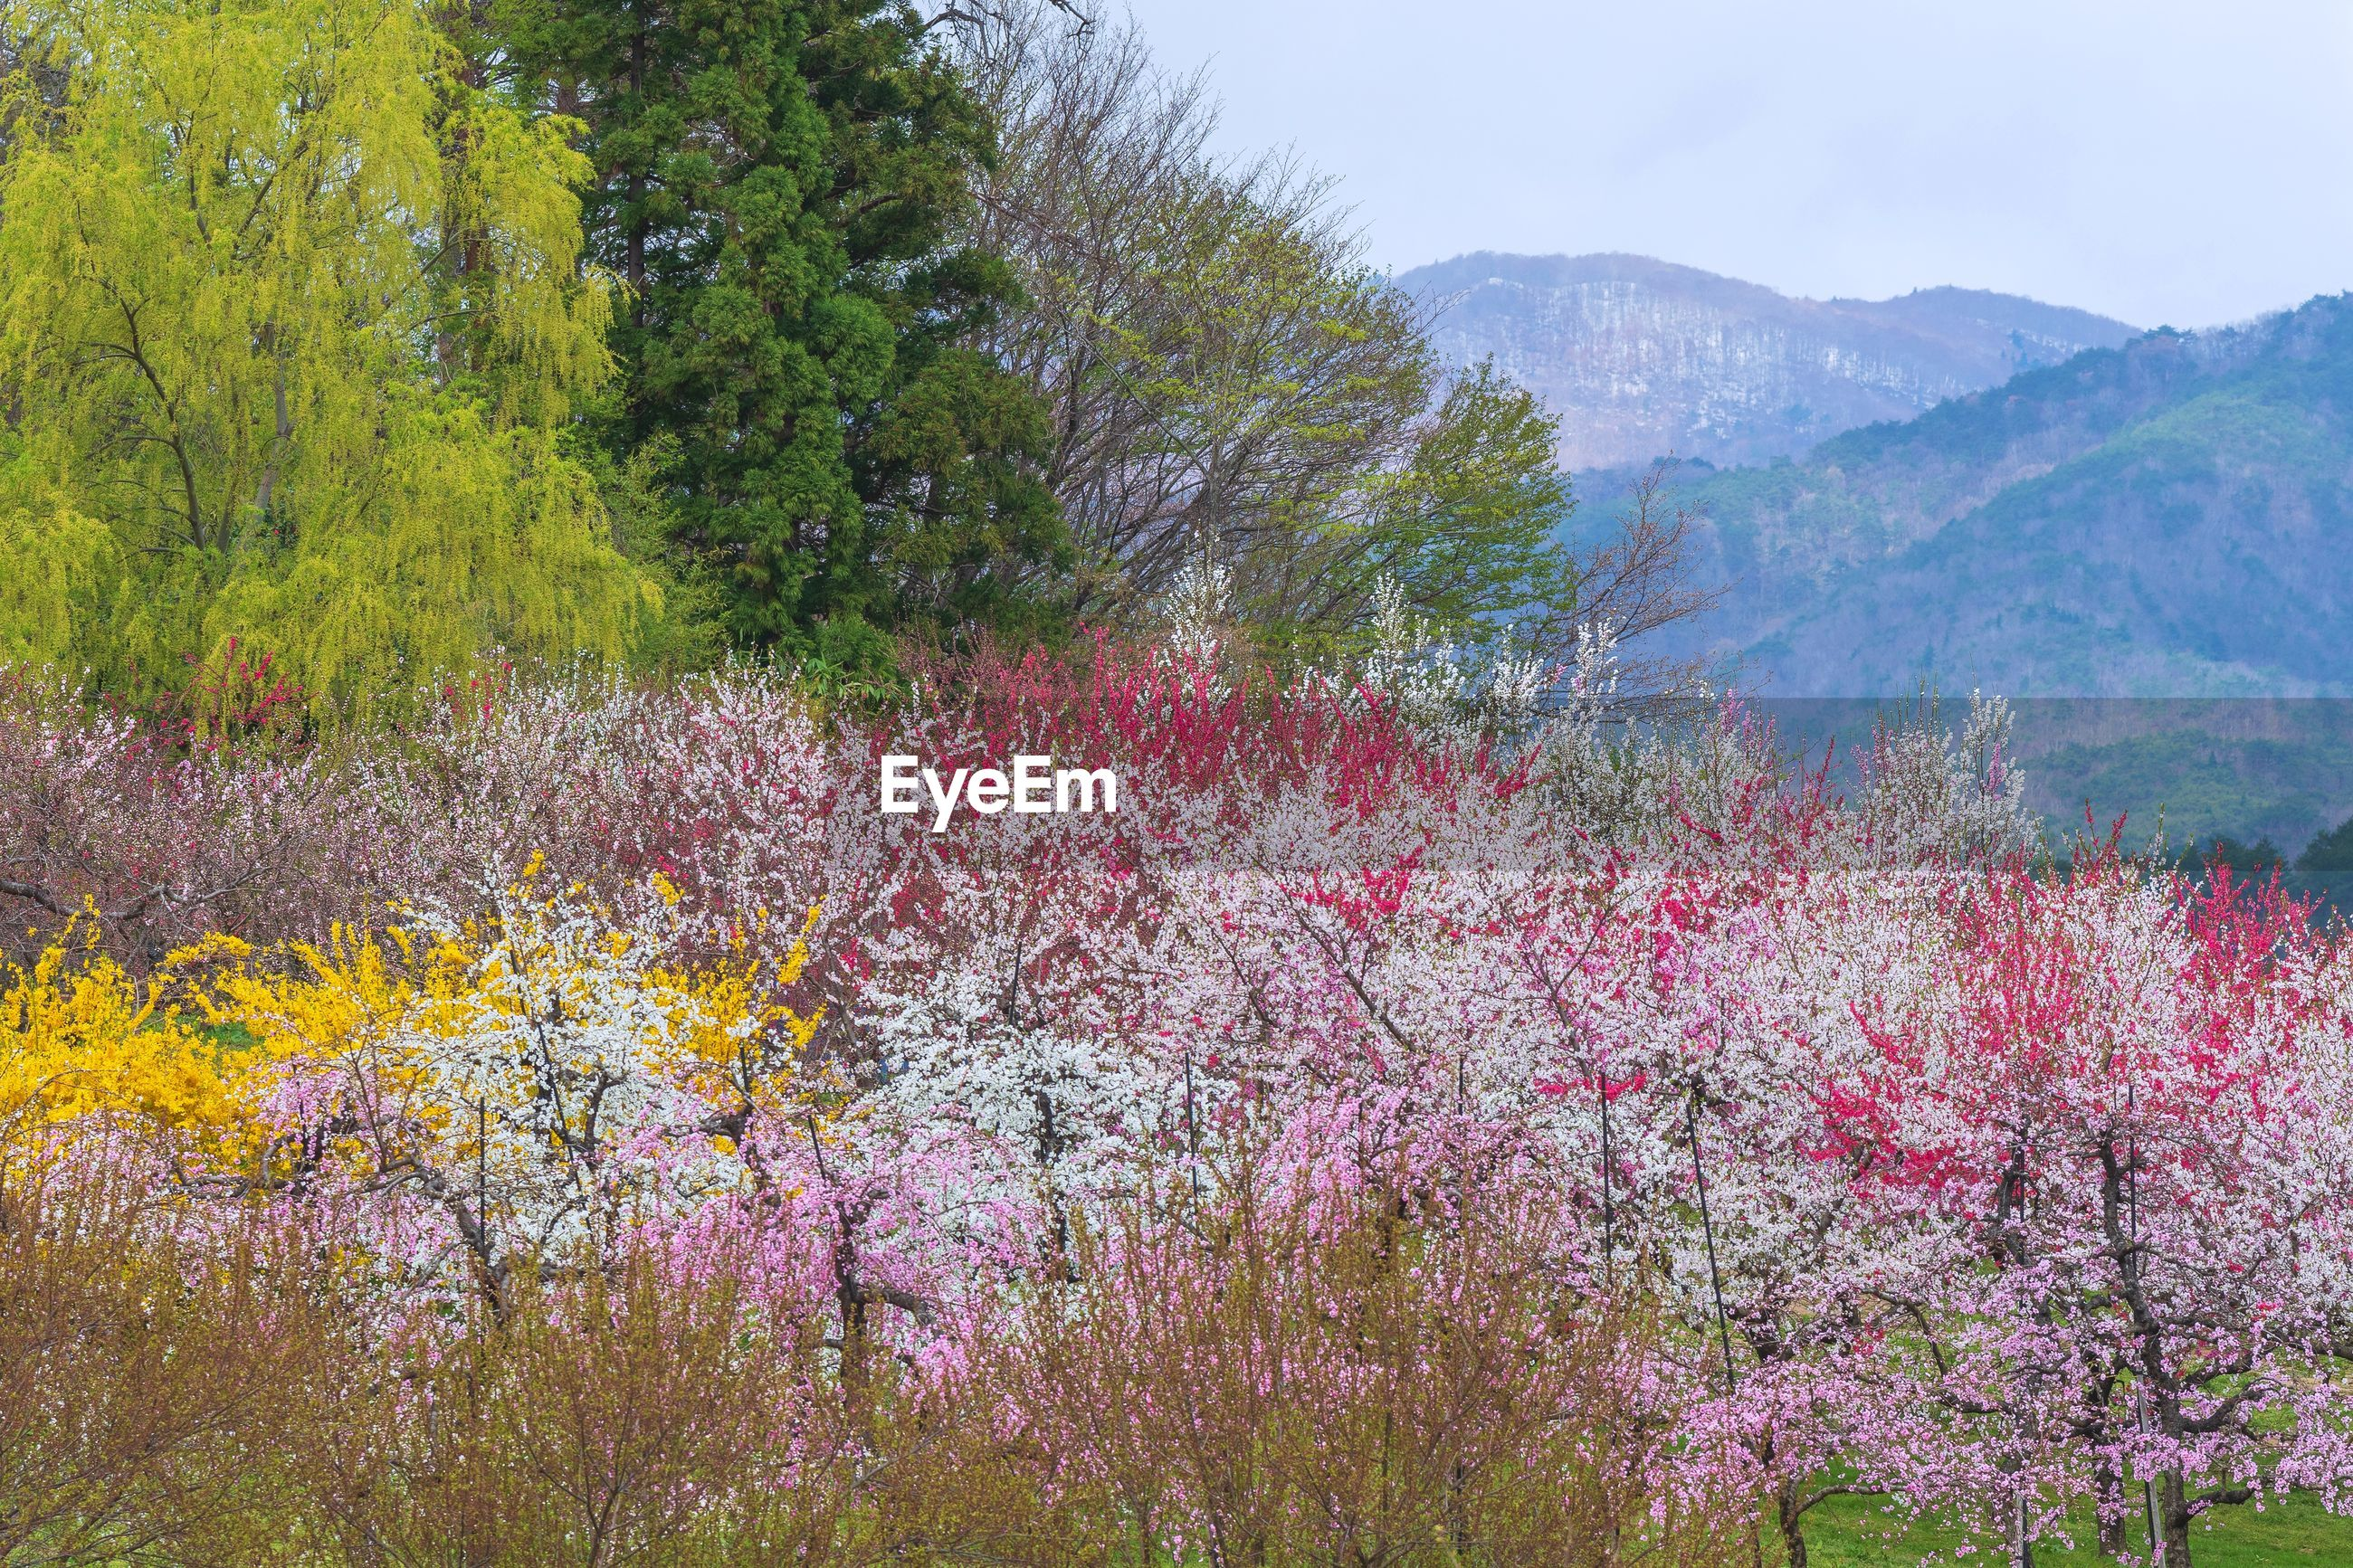 SCENIC VIEW OF PINK FLOWERING TREE